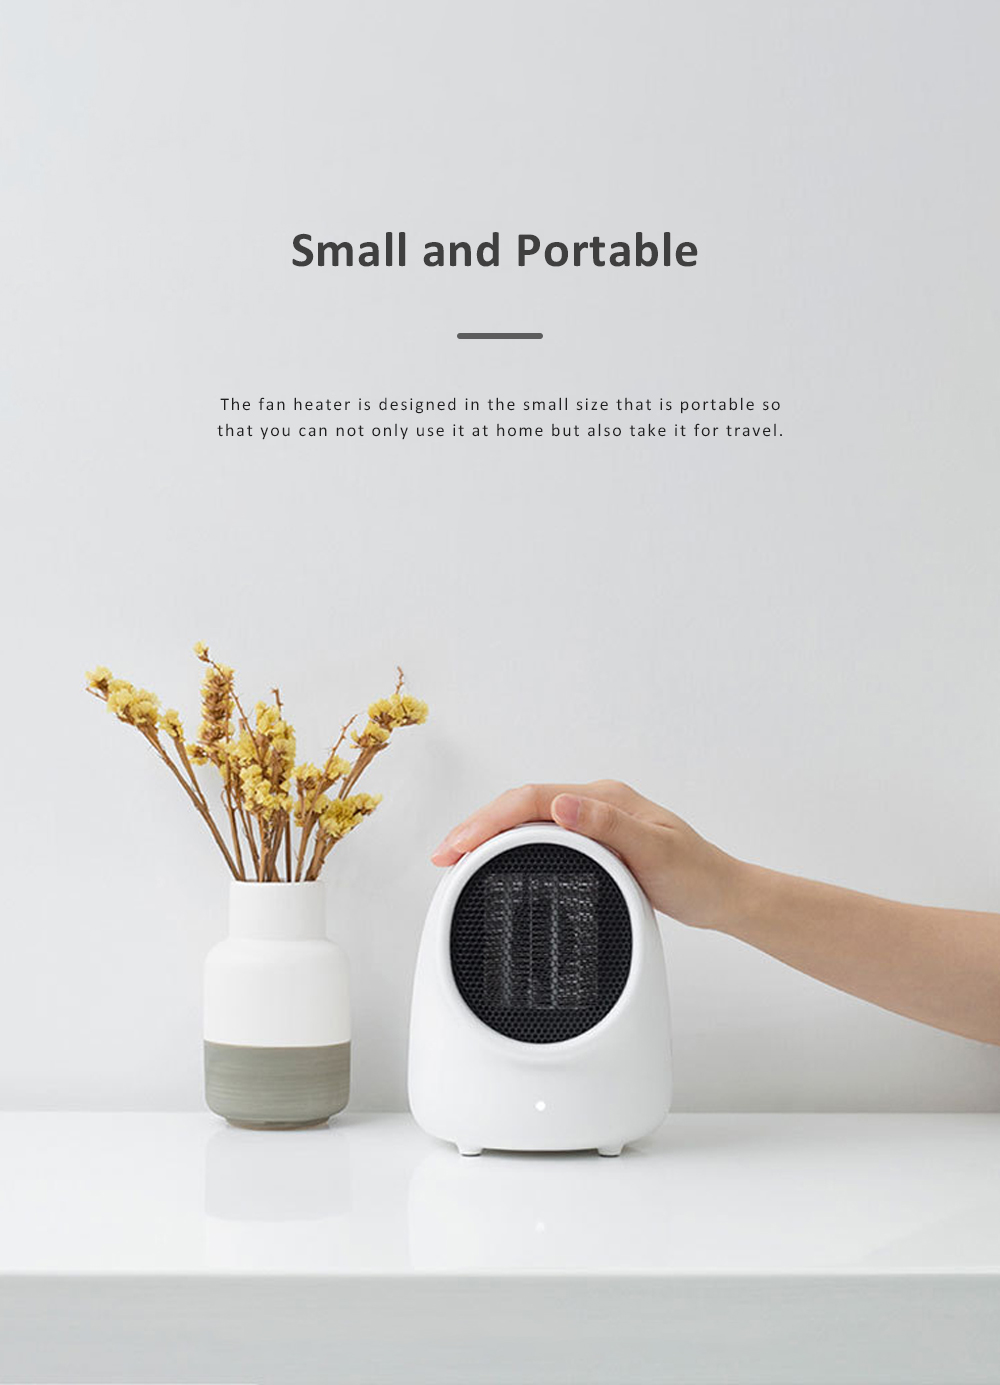 Portable Heater Domestic Small Warm Air Fan Thermostat Self-control Scald-proof Personal Heating Machine 3